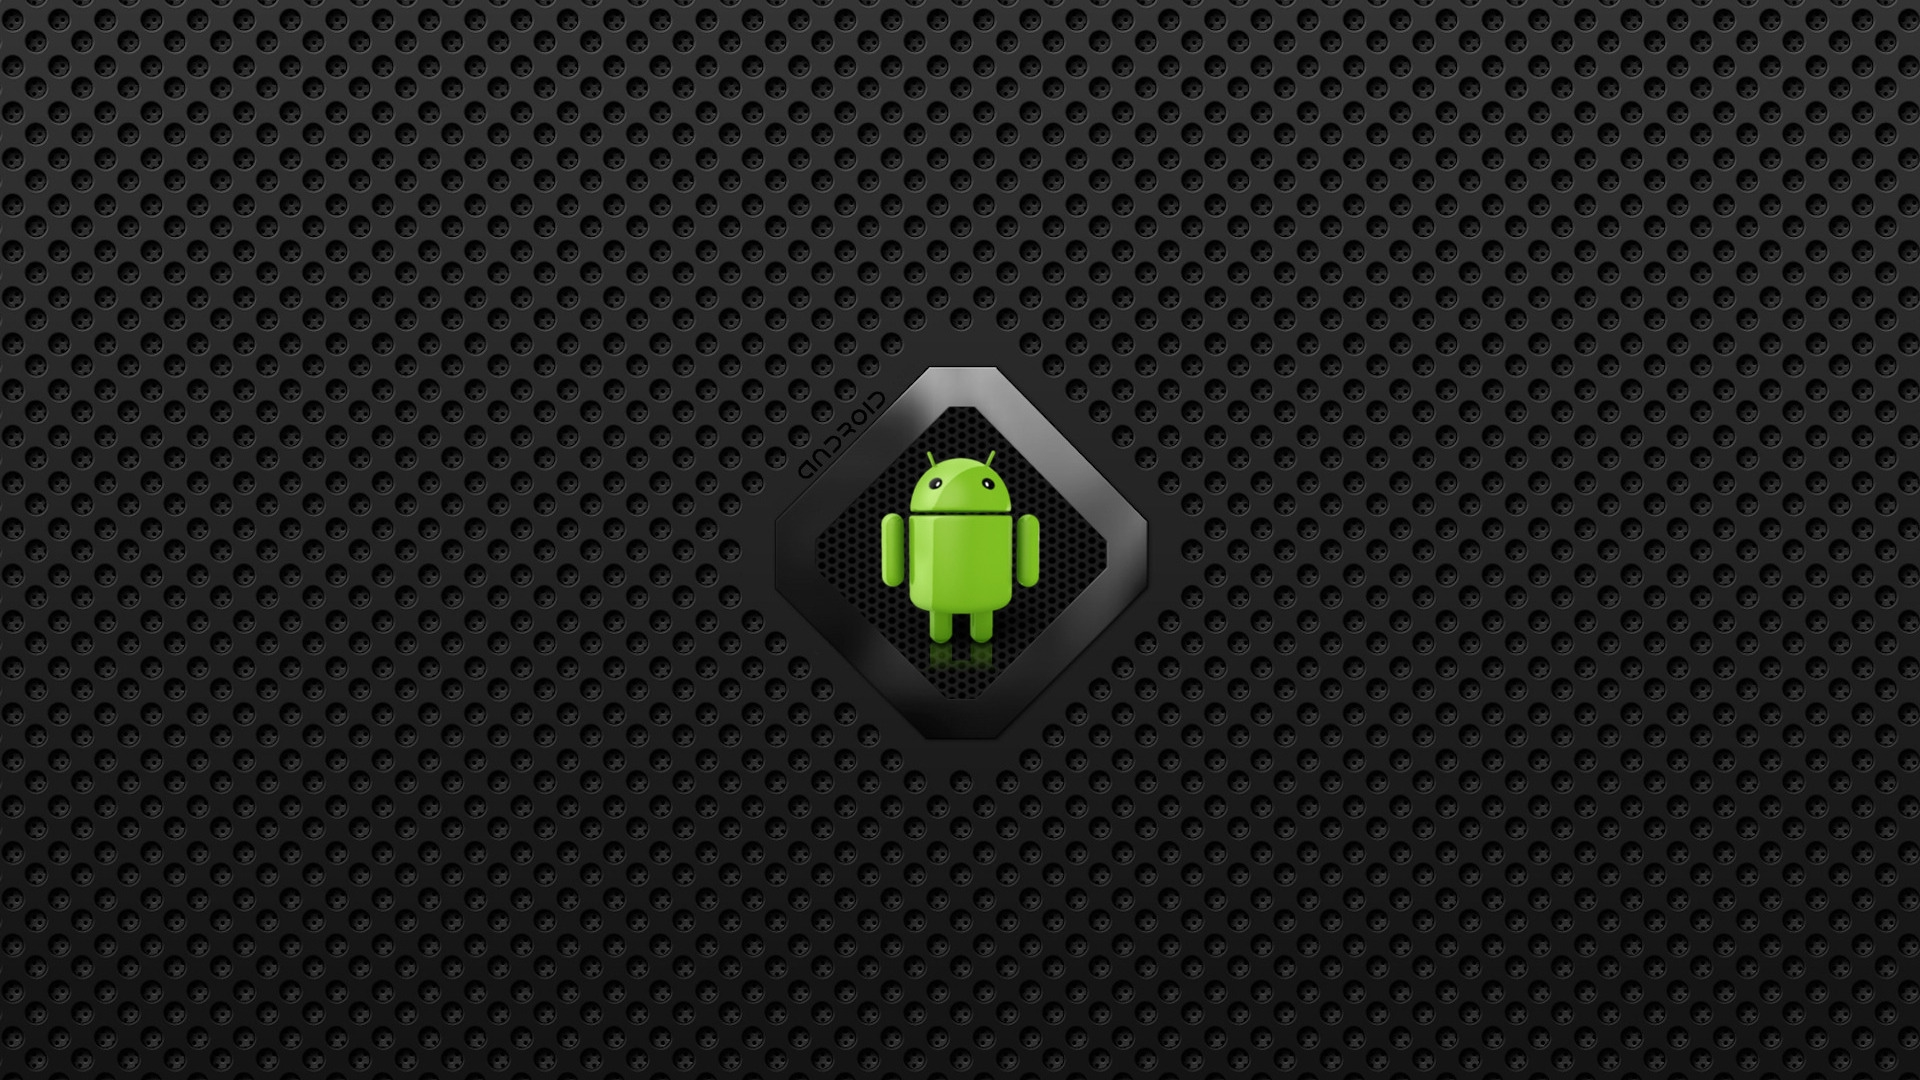 Os Android Wallpaper For Desktop